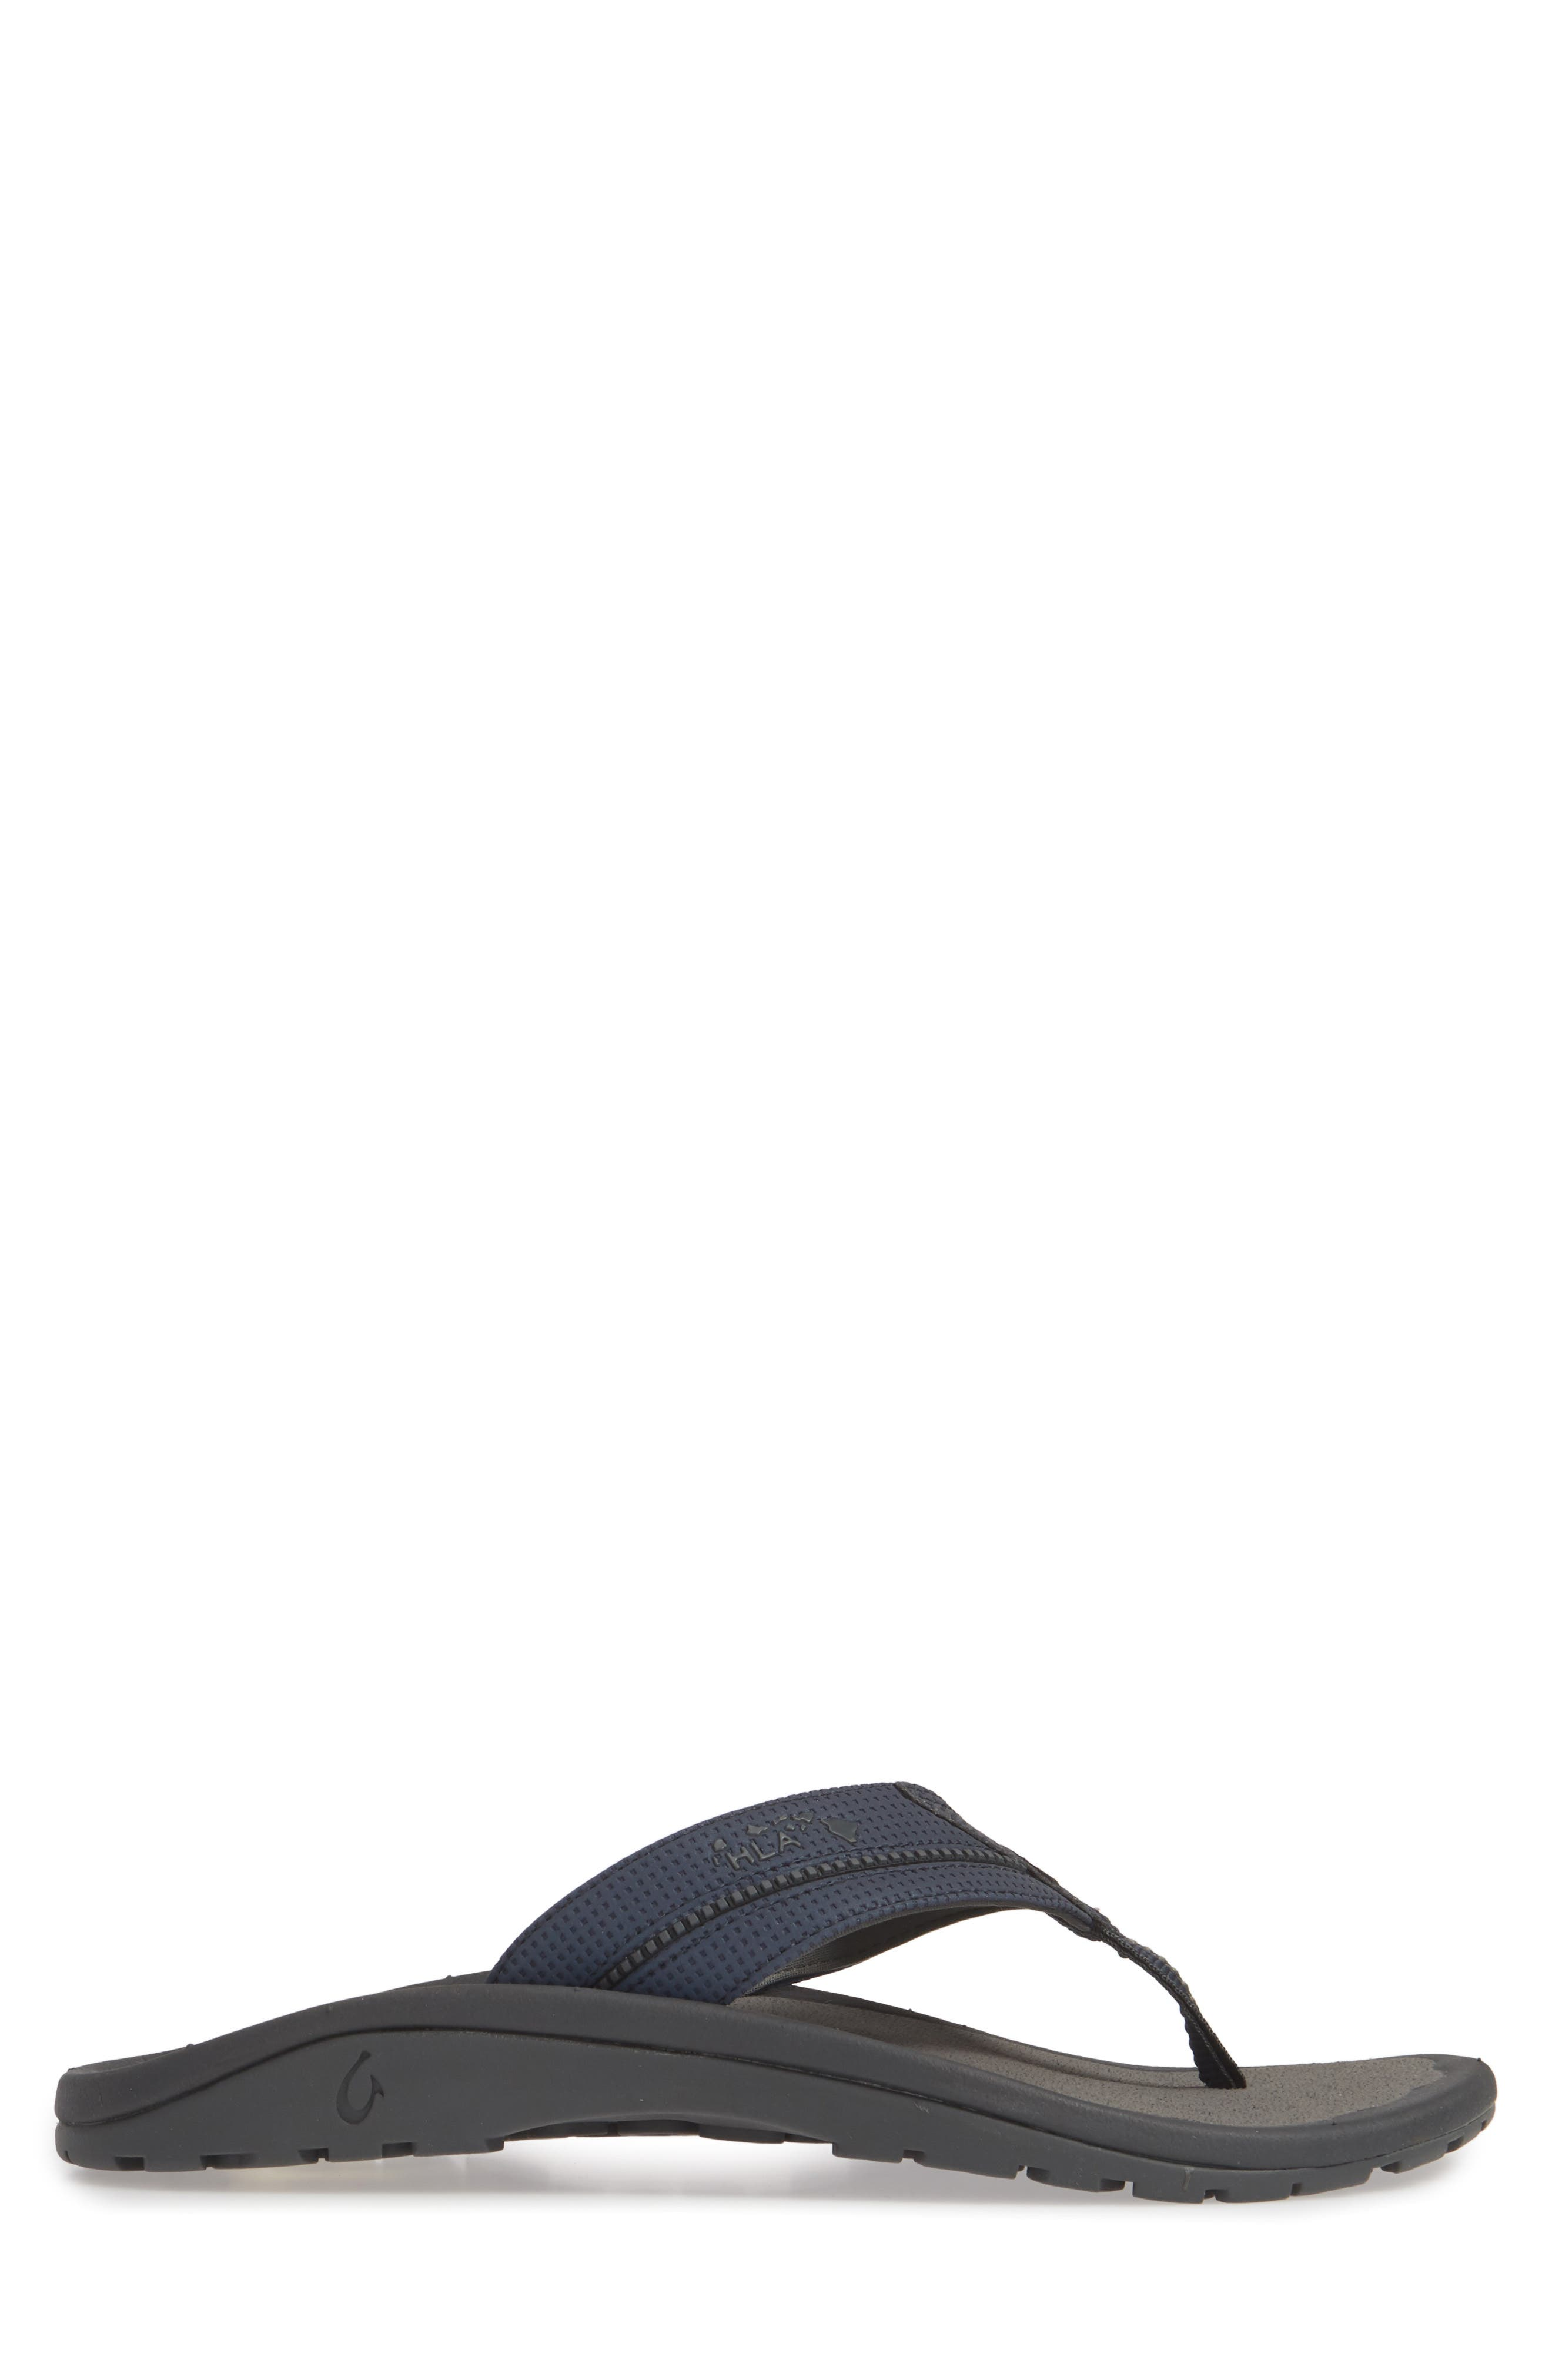 OLUKAI, 'Kia'i II' Flip Flop, Alternate thumbnail 3, color, TRENCH BLUE/ CHARCOAL